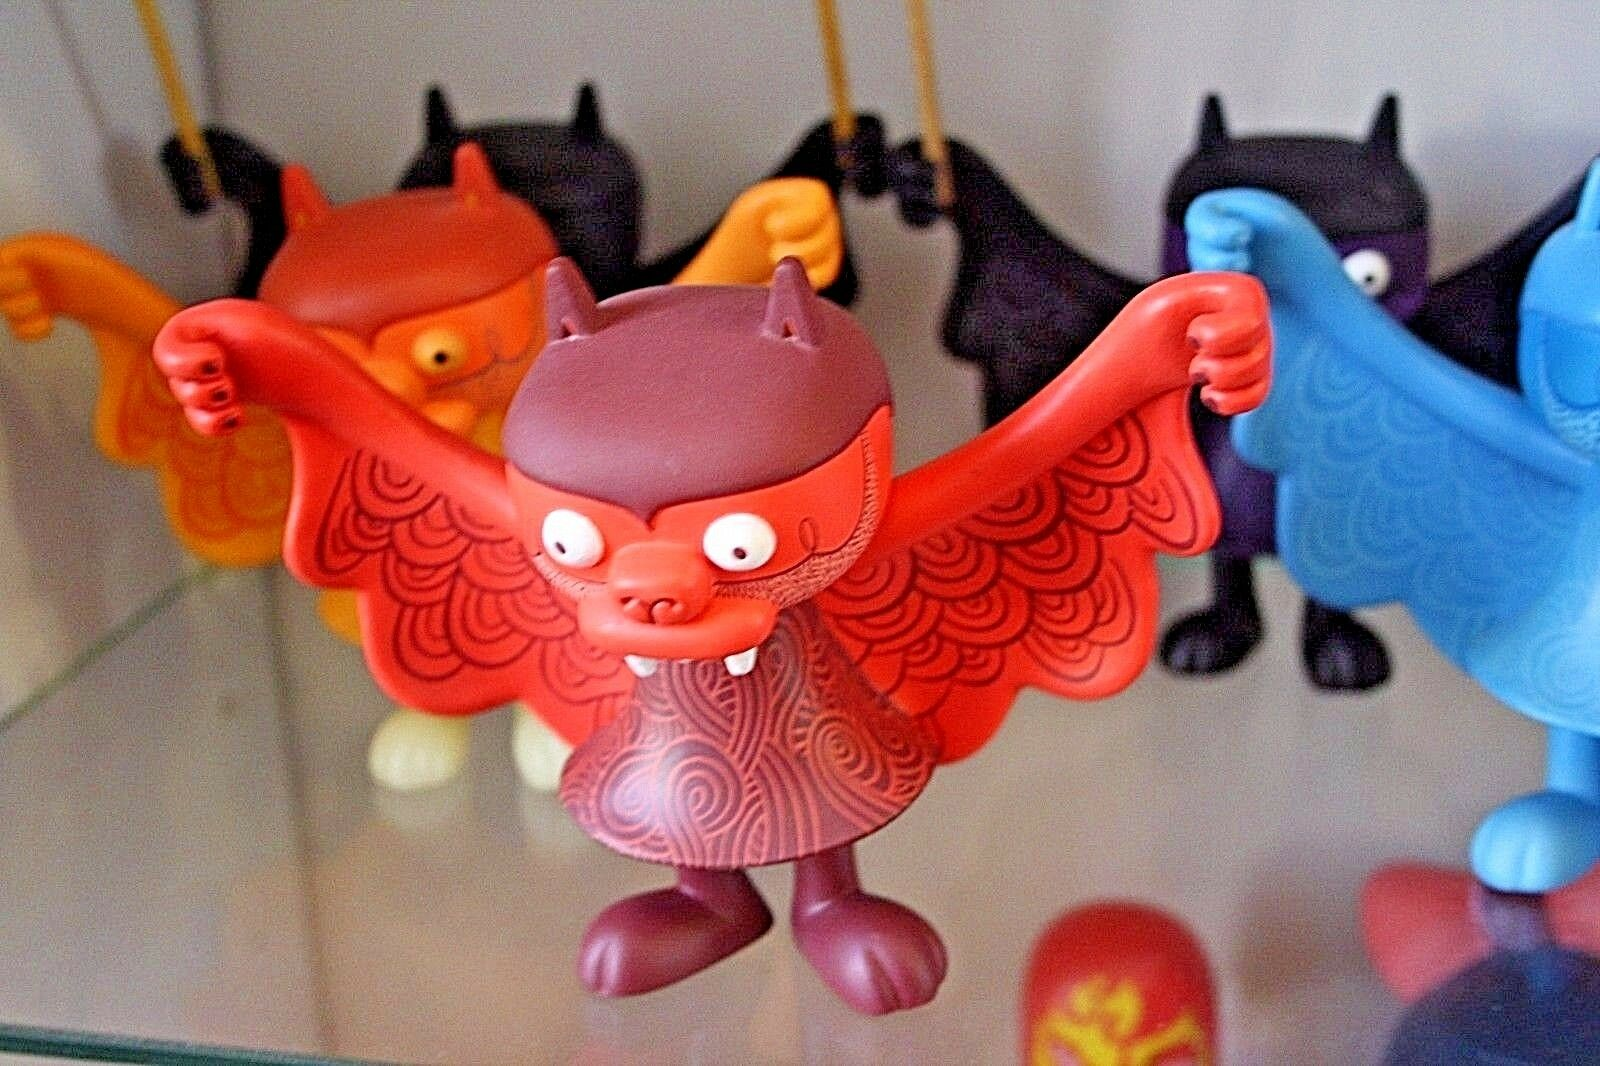 BWANA SPOONS Super7 Designer Toy Toy Toy STEVEN THE BAT 5  BLOOD AND GUTS rot fca5d6